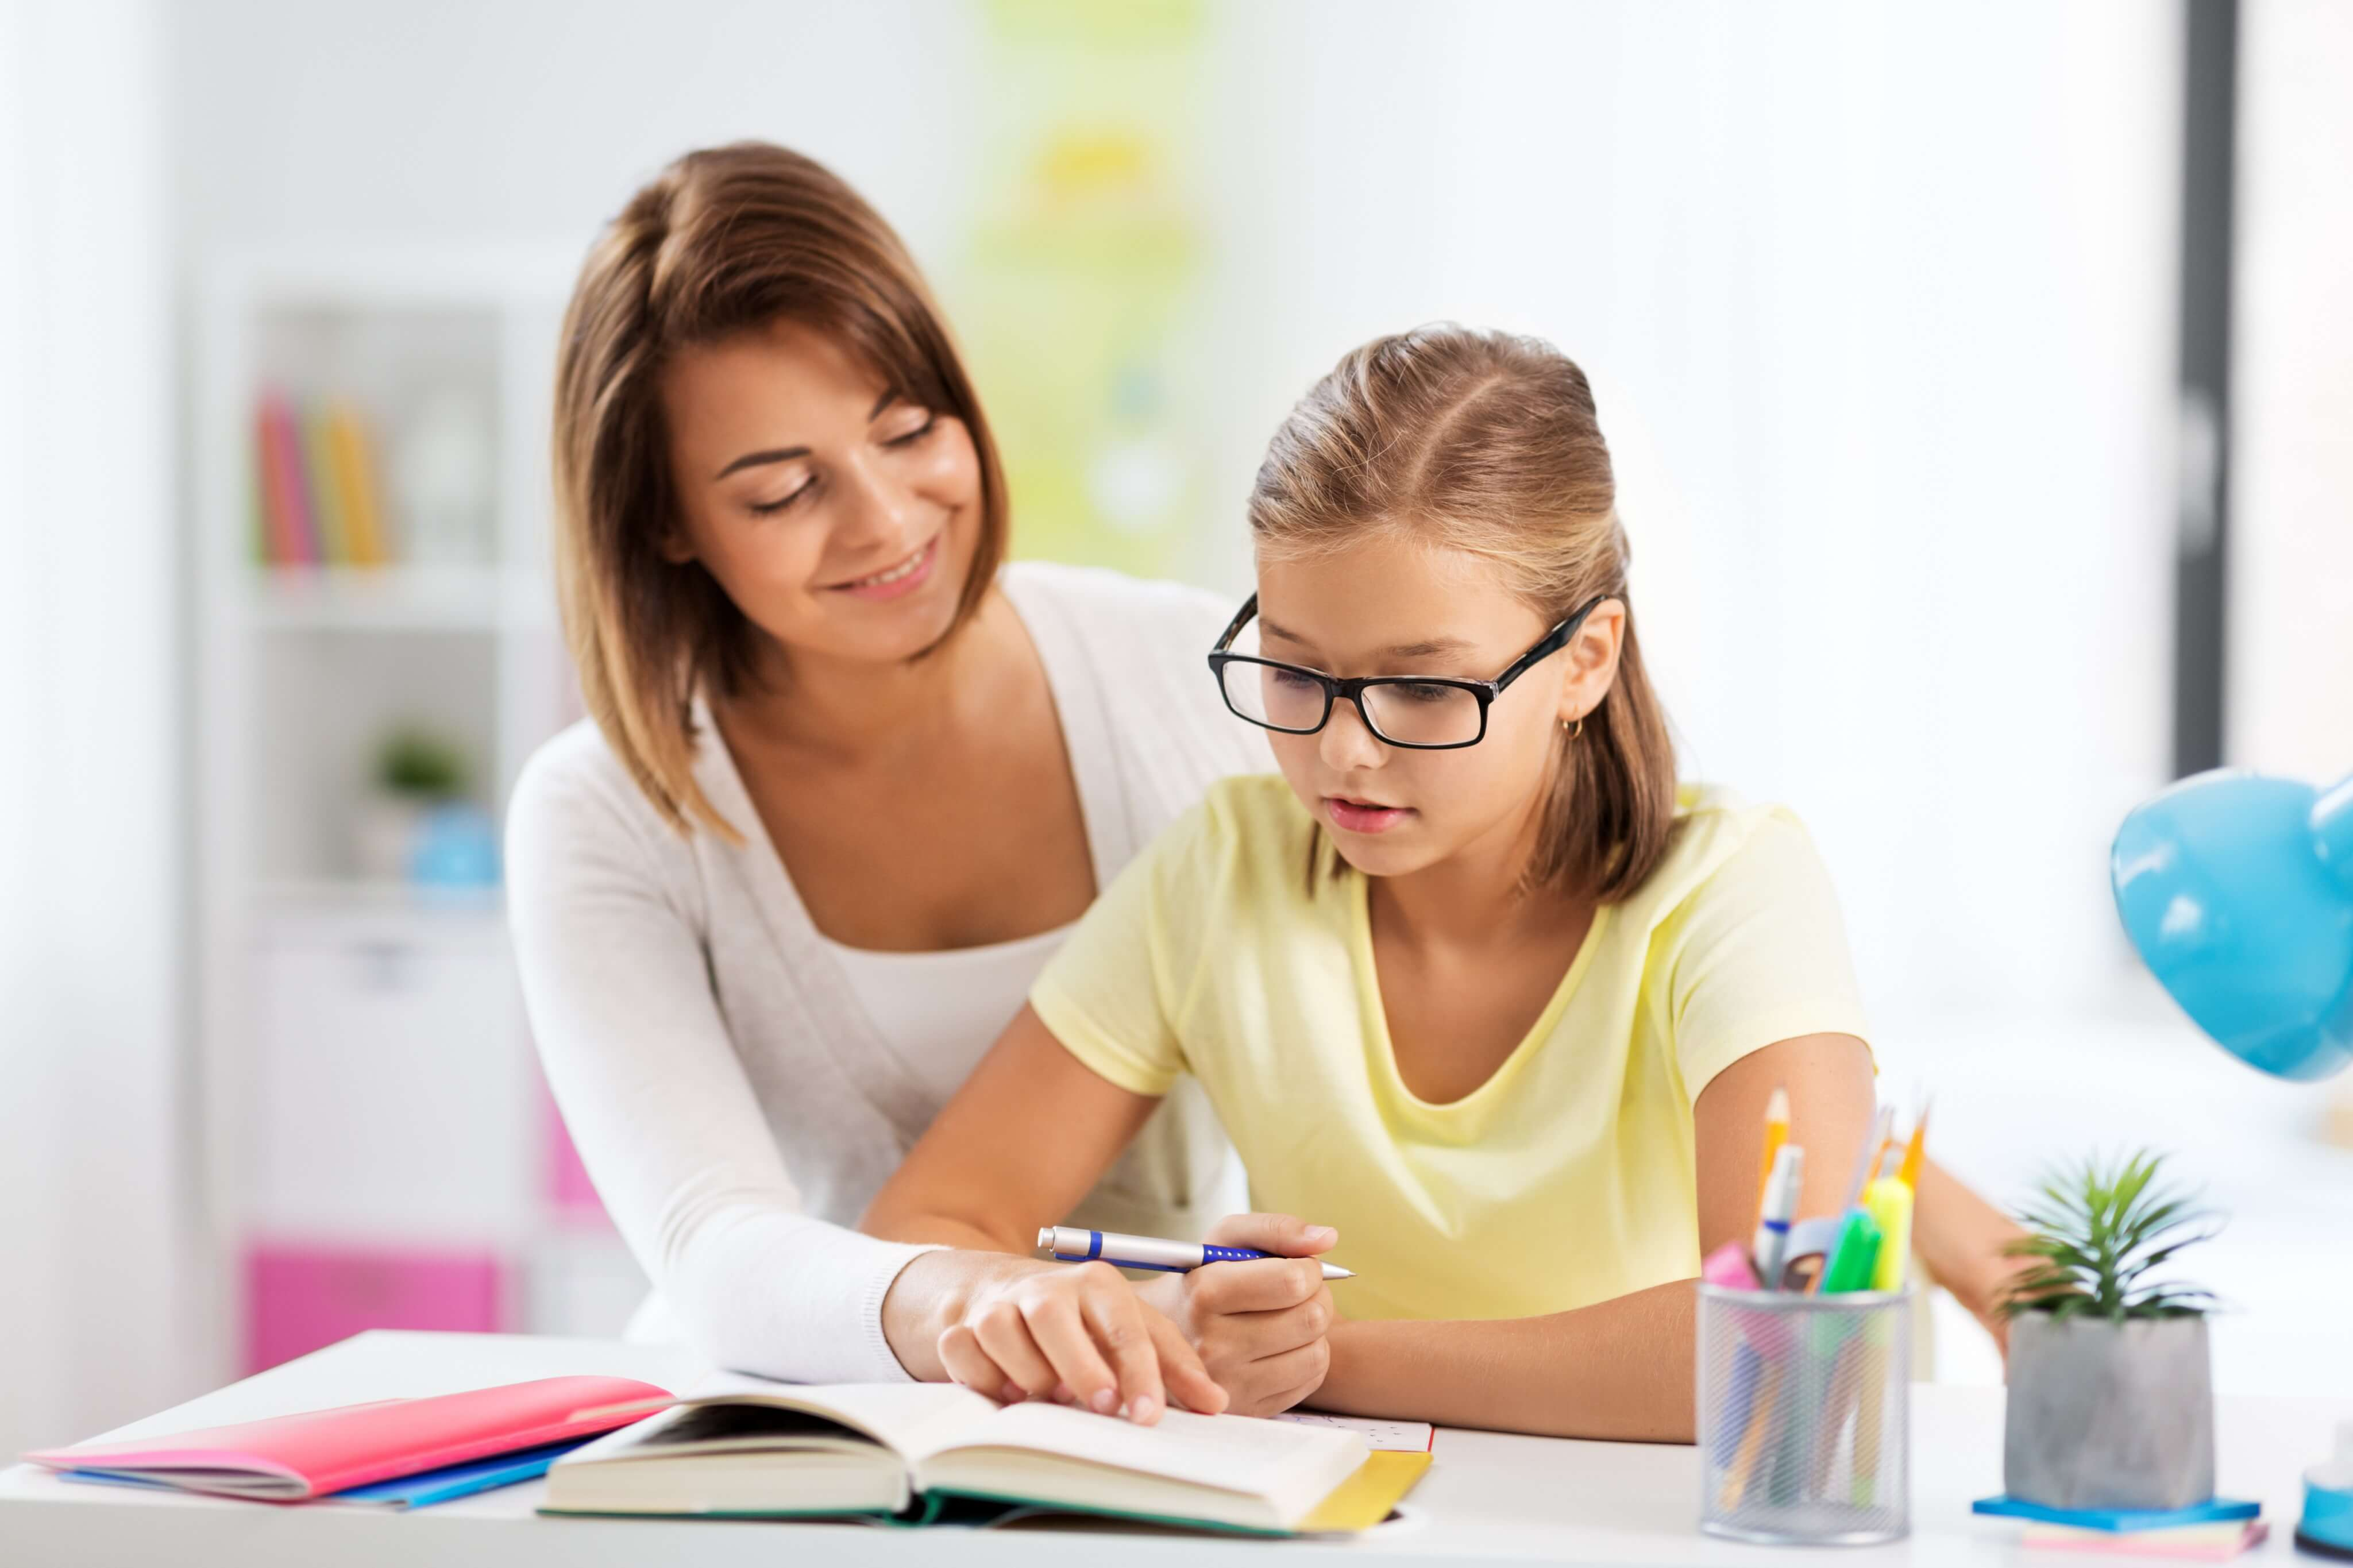 Why seek at home education for your child?